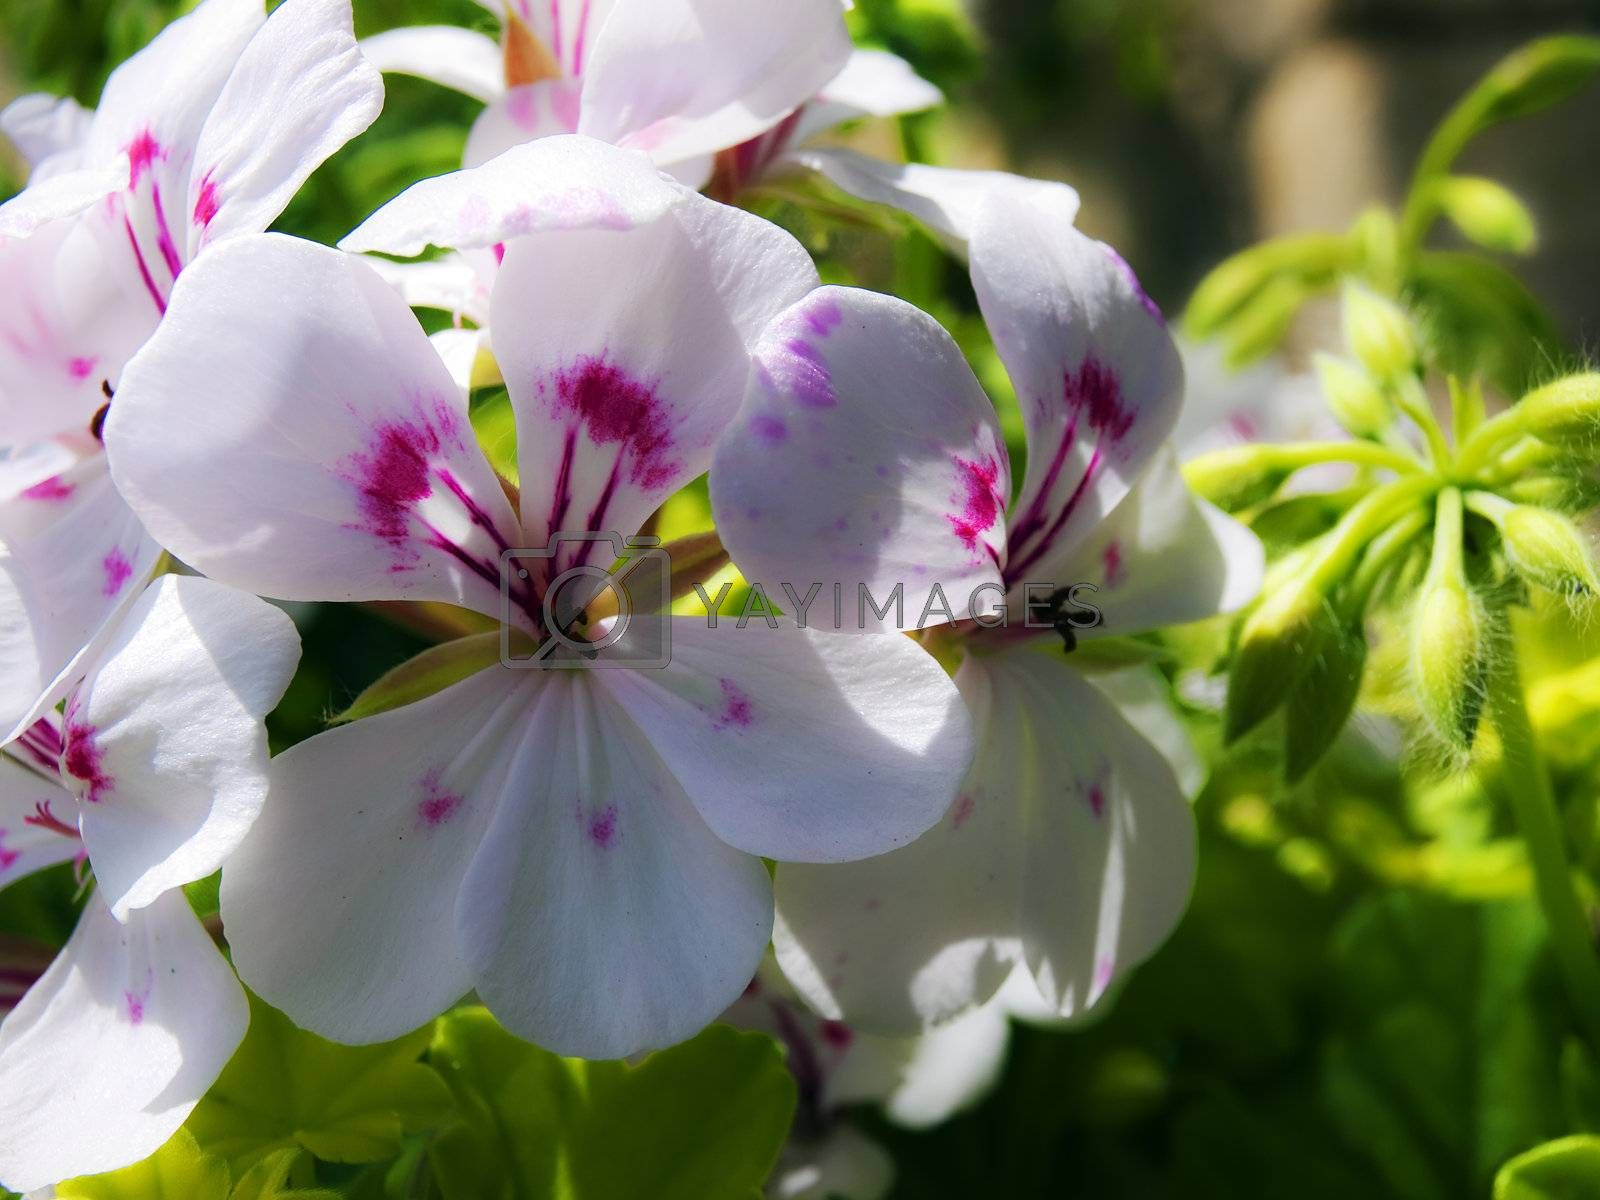 Beautiful white flower speckled with deep magenta markings